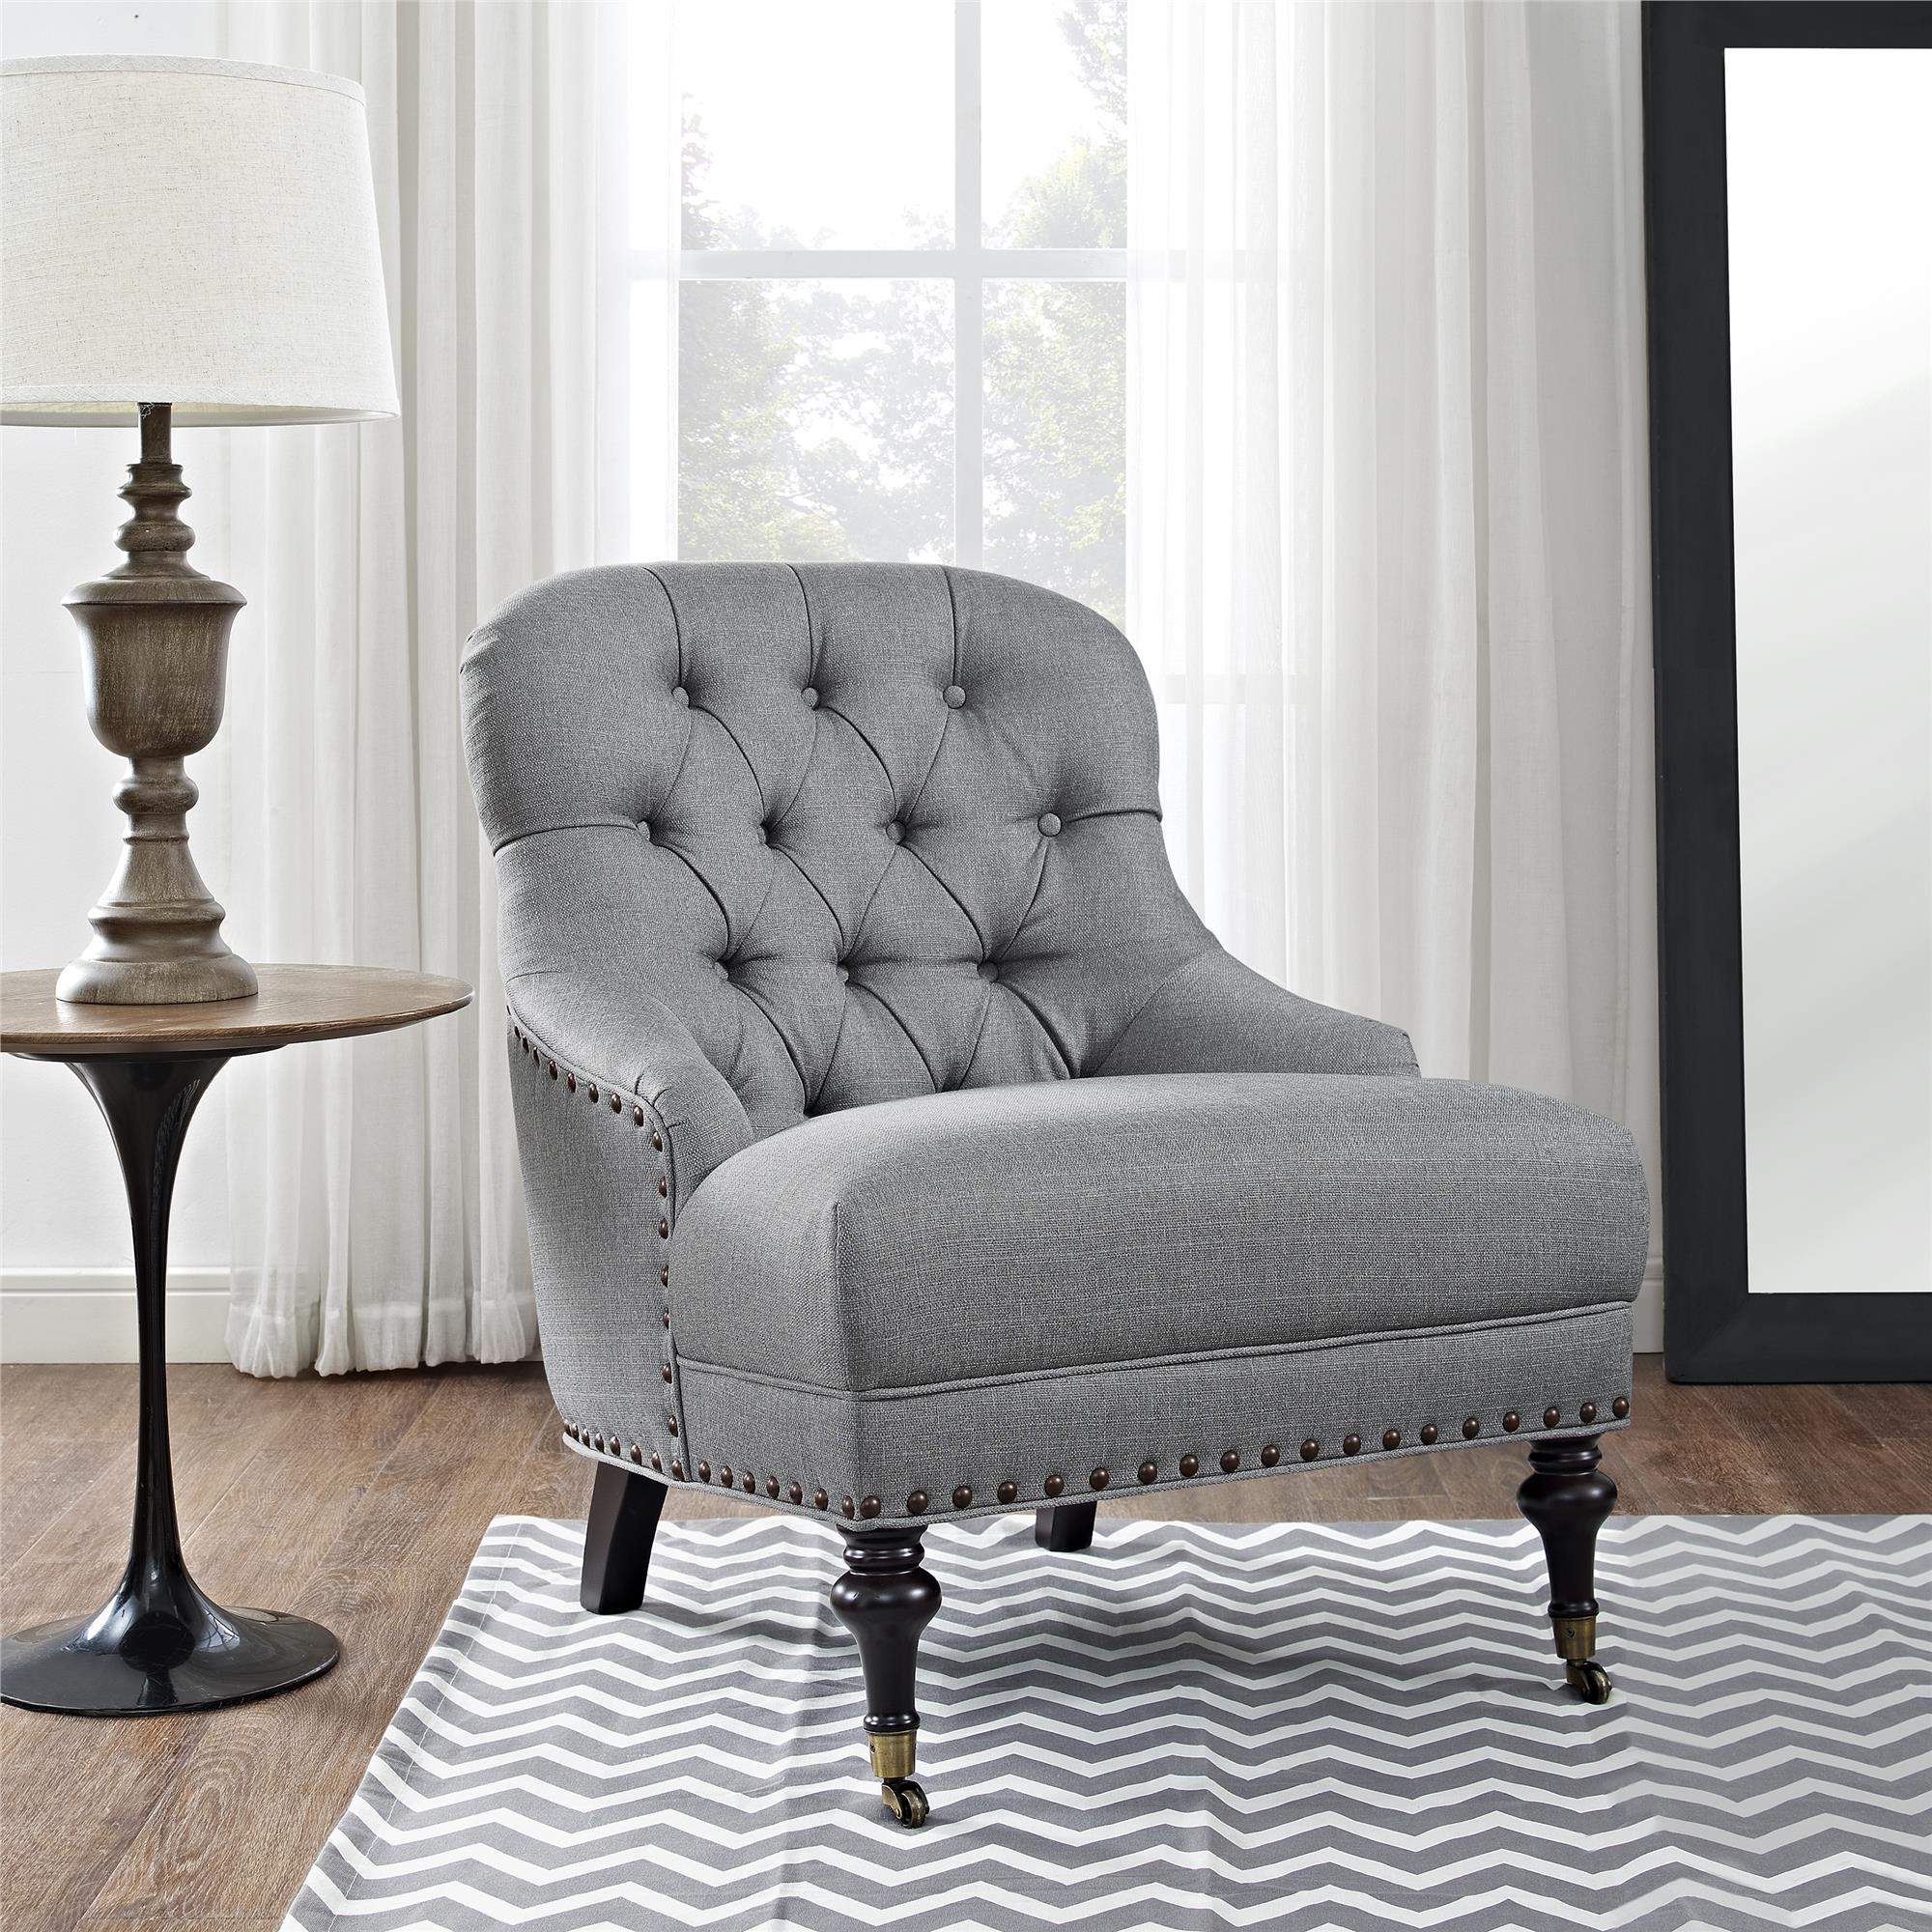 Tufted Accent Chair Traditional Design Living room Top Quality Light Gray  New